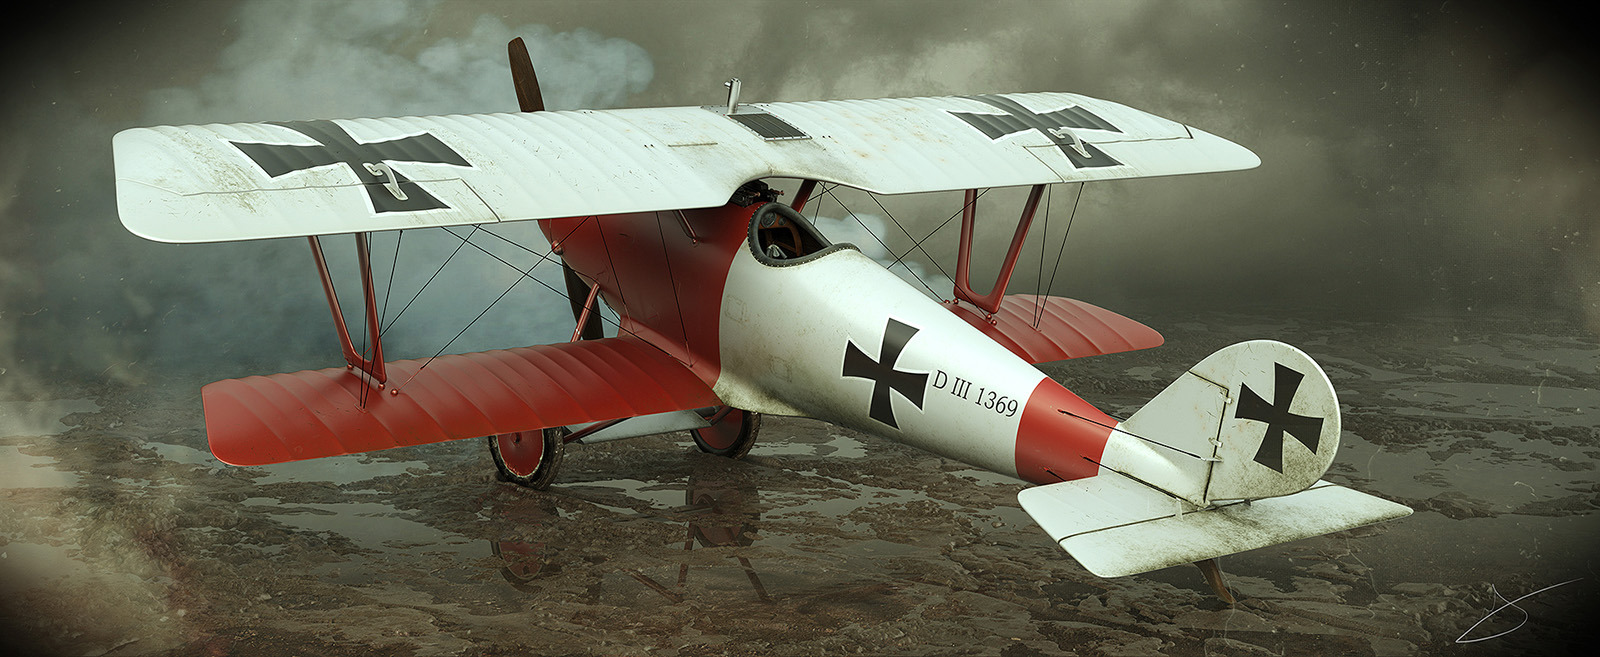 Pfalz D III a First Great Air War airplane